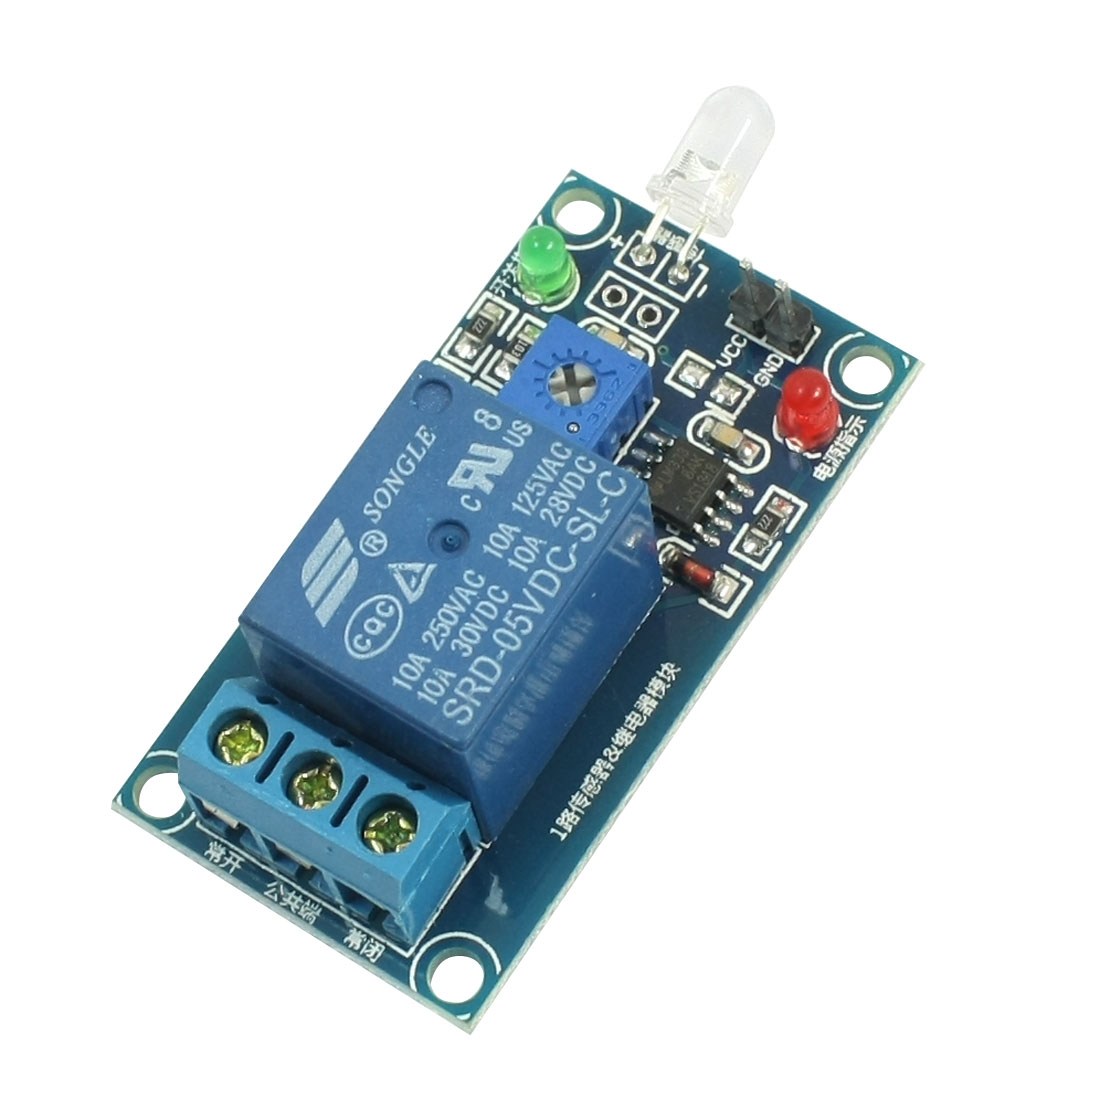 Photosensitive Diode Light Sensor Photoswitch Relay Module DC 5V